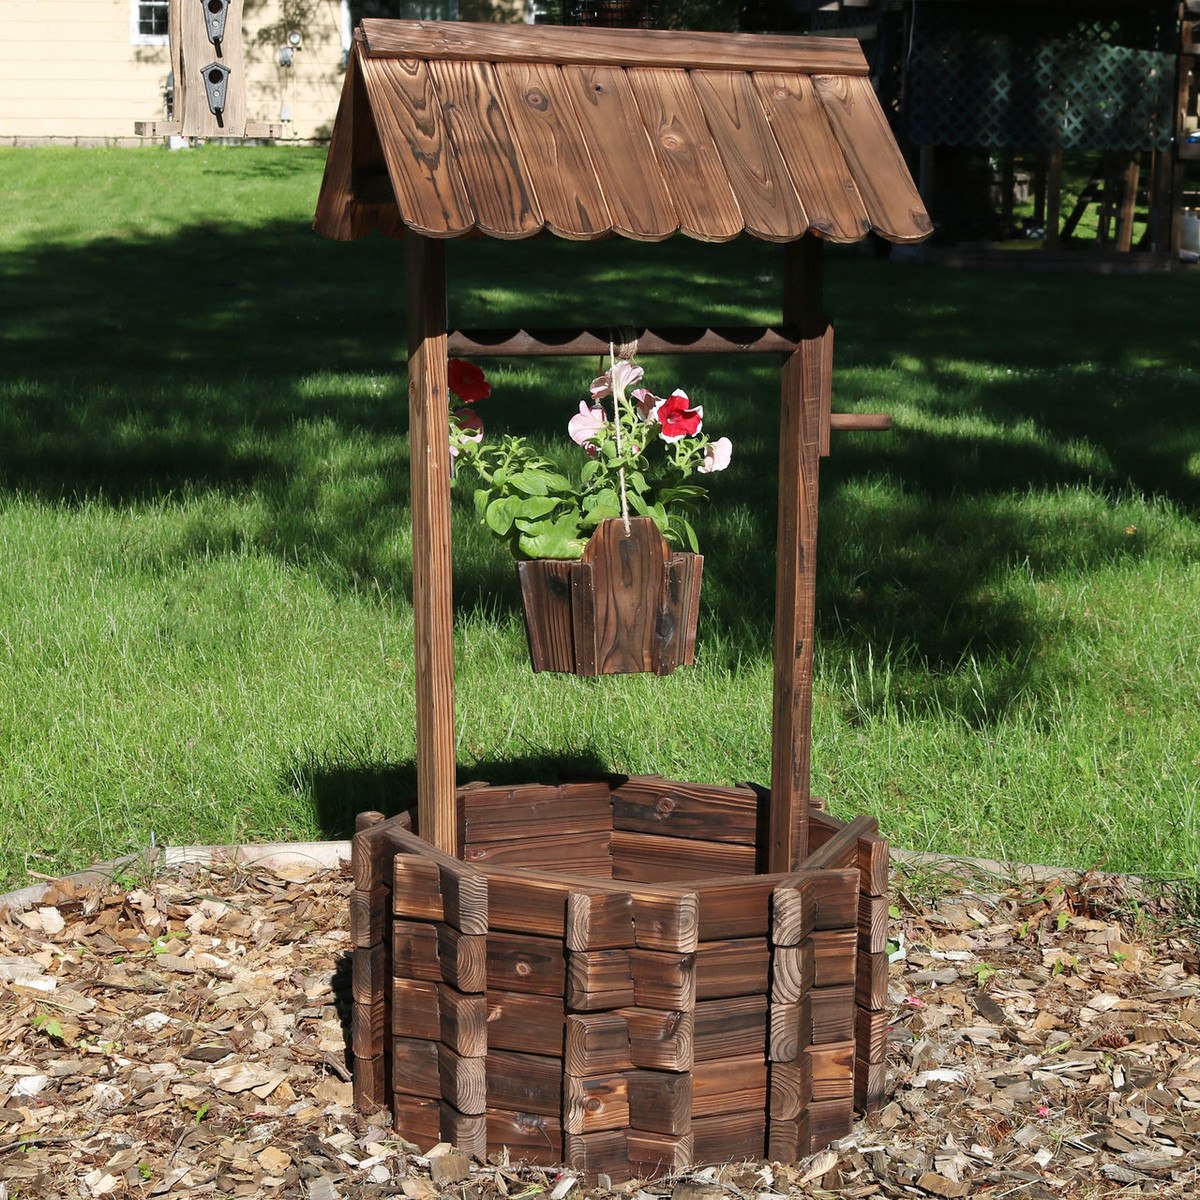 Sunnydaze Wood Wishing Well Outdoor Garden Planter, 45 Inch Tall